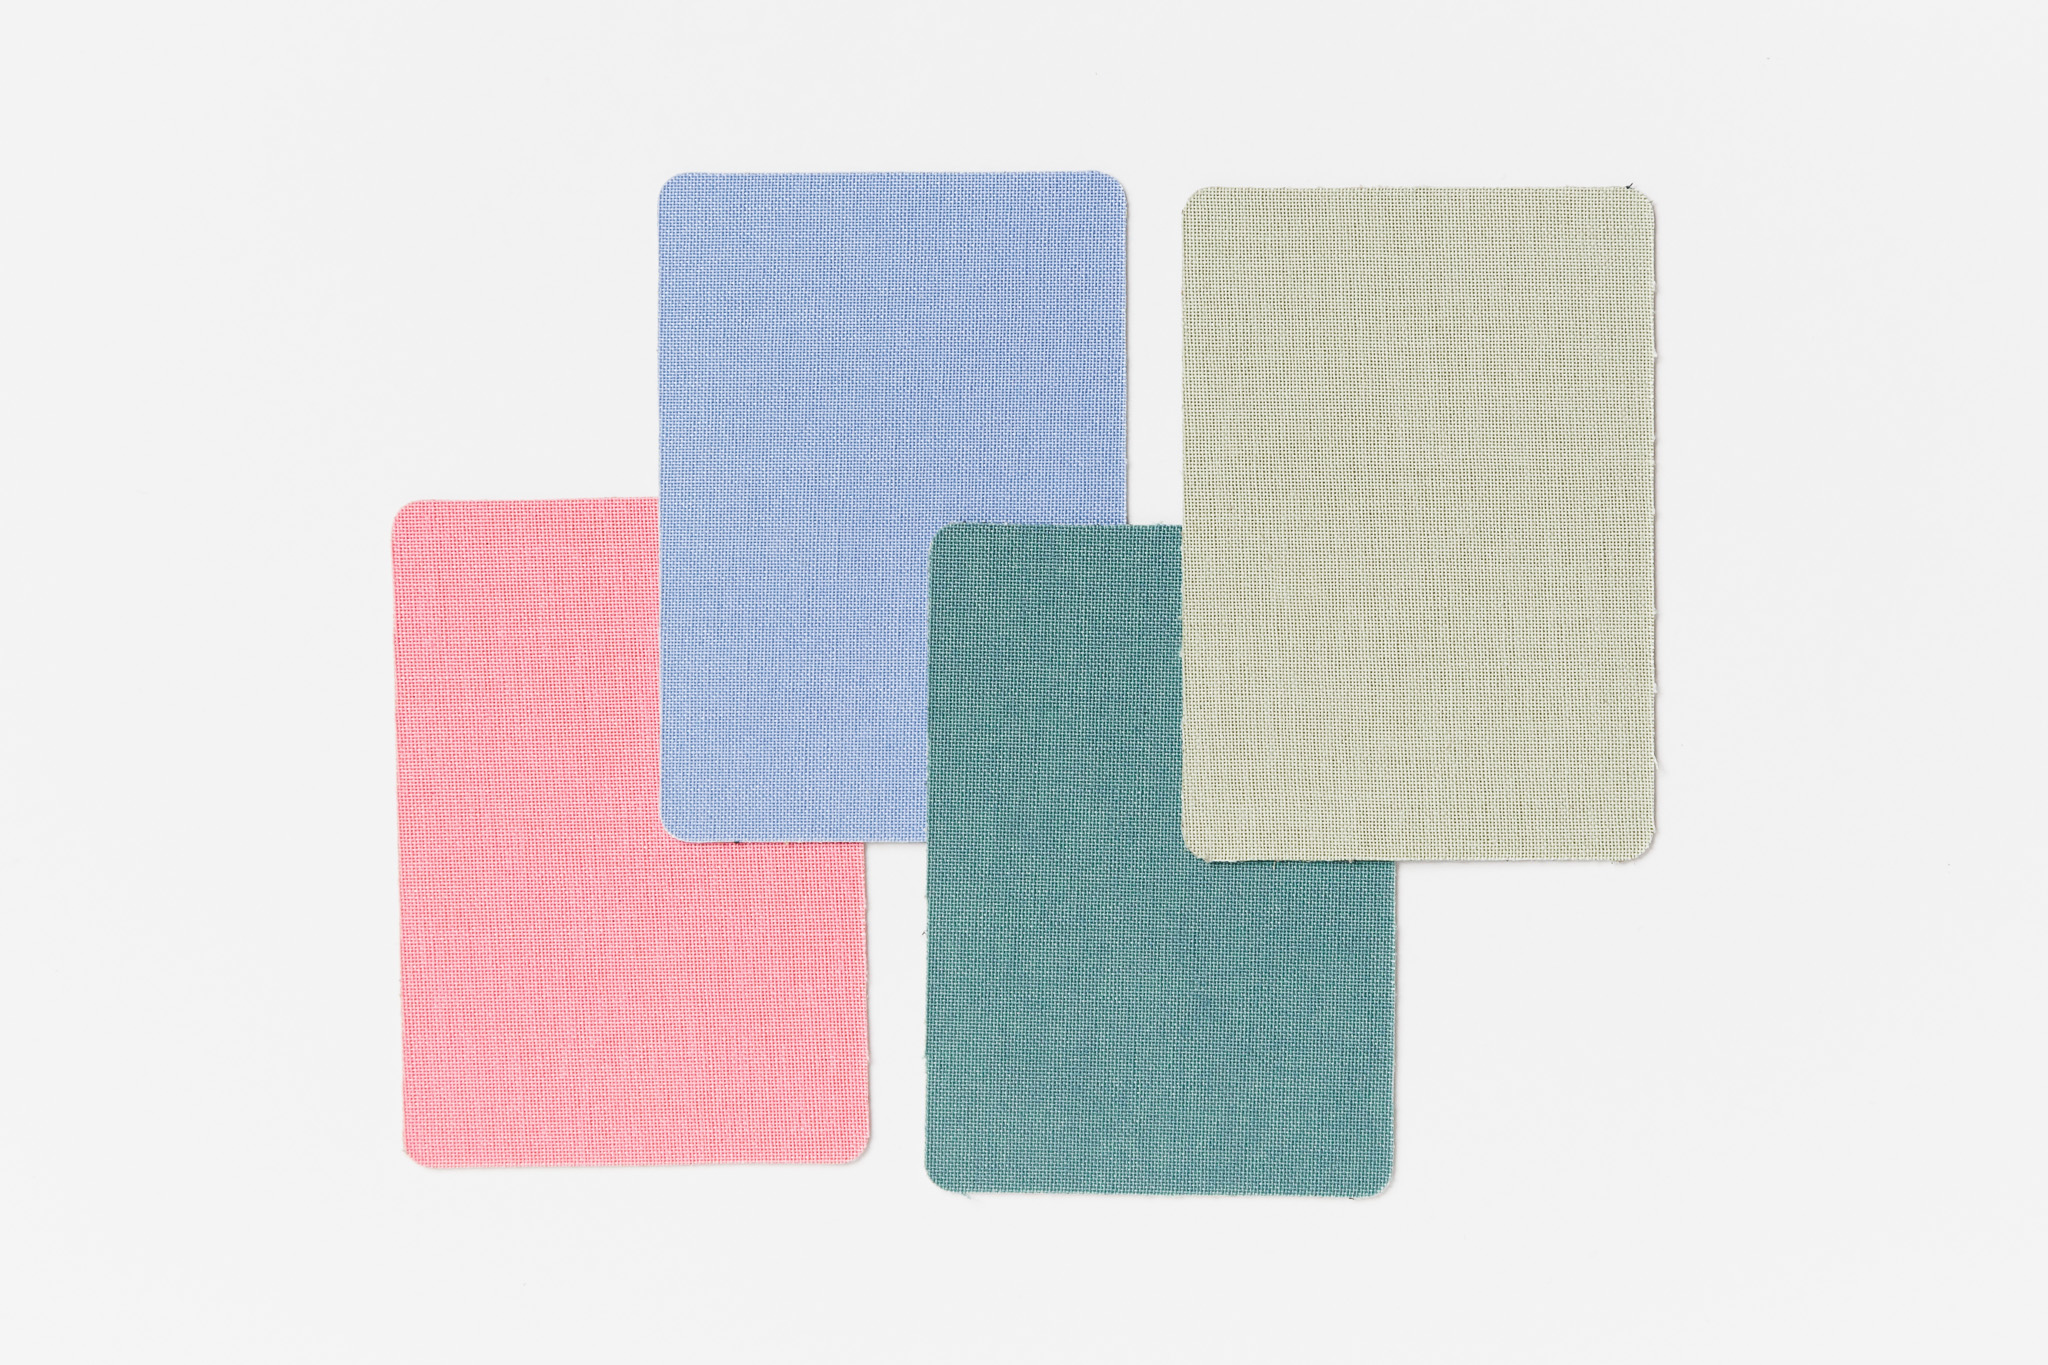 Copy of book cover options - linen fabric colors